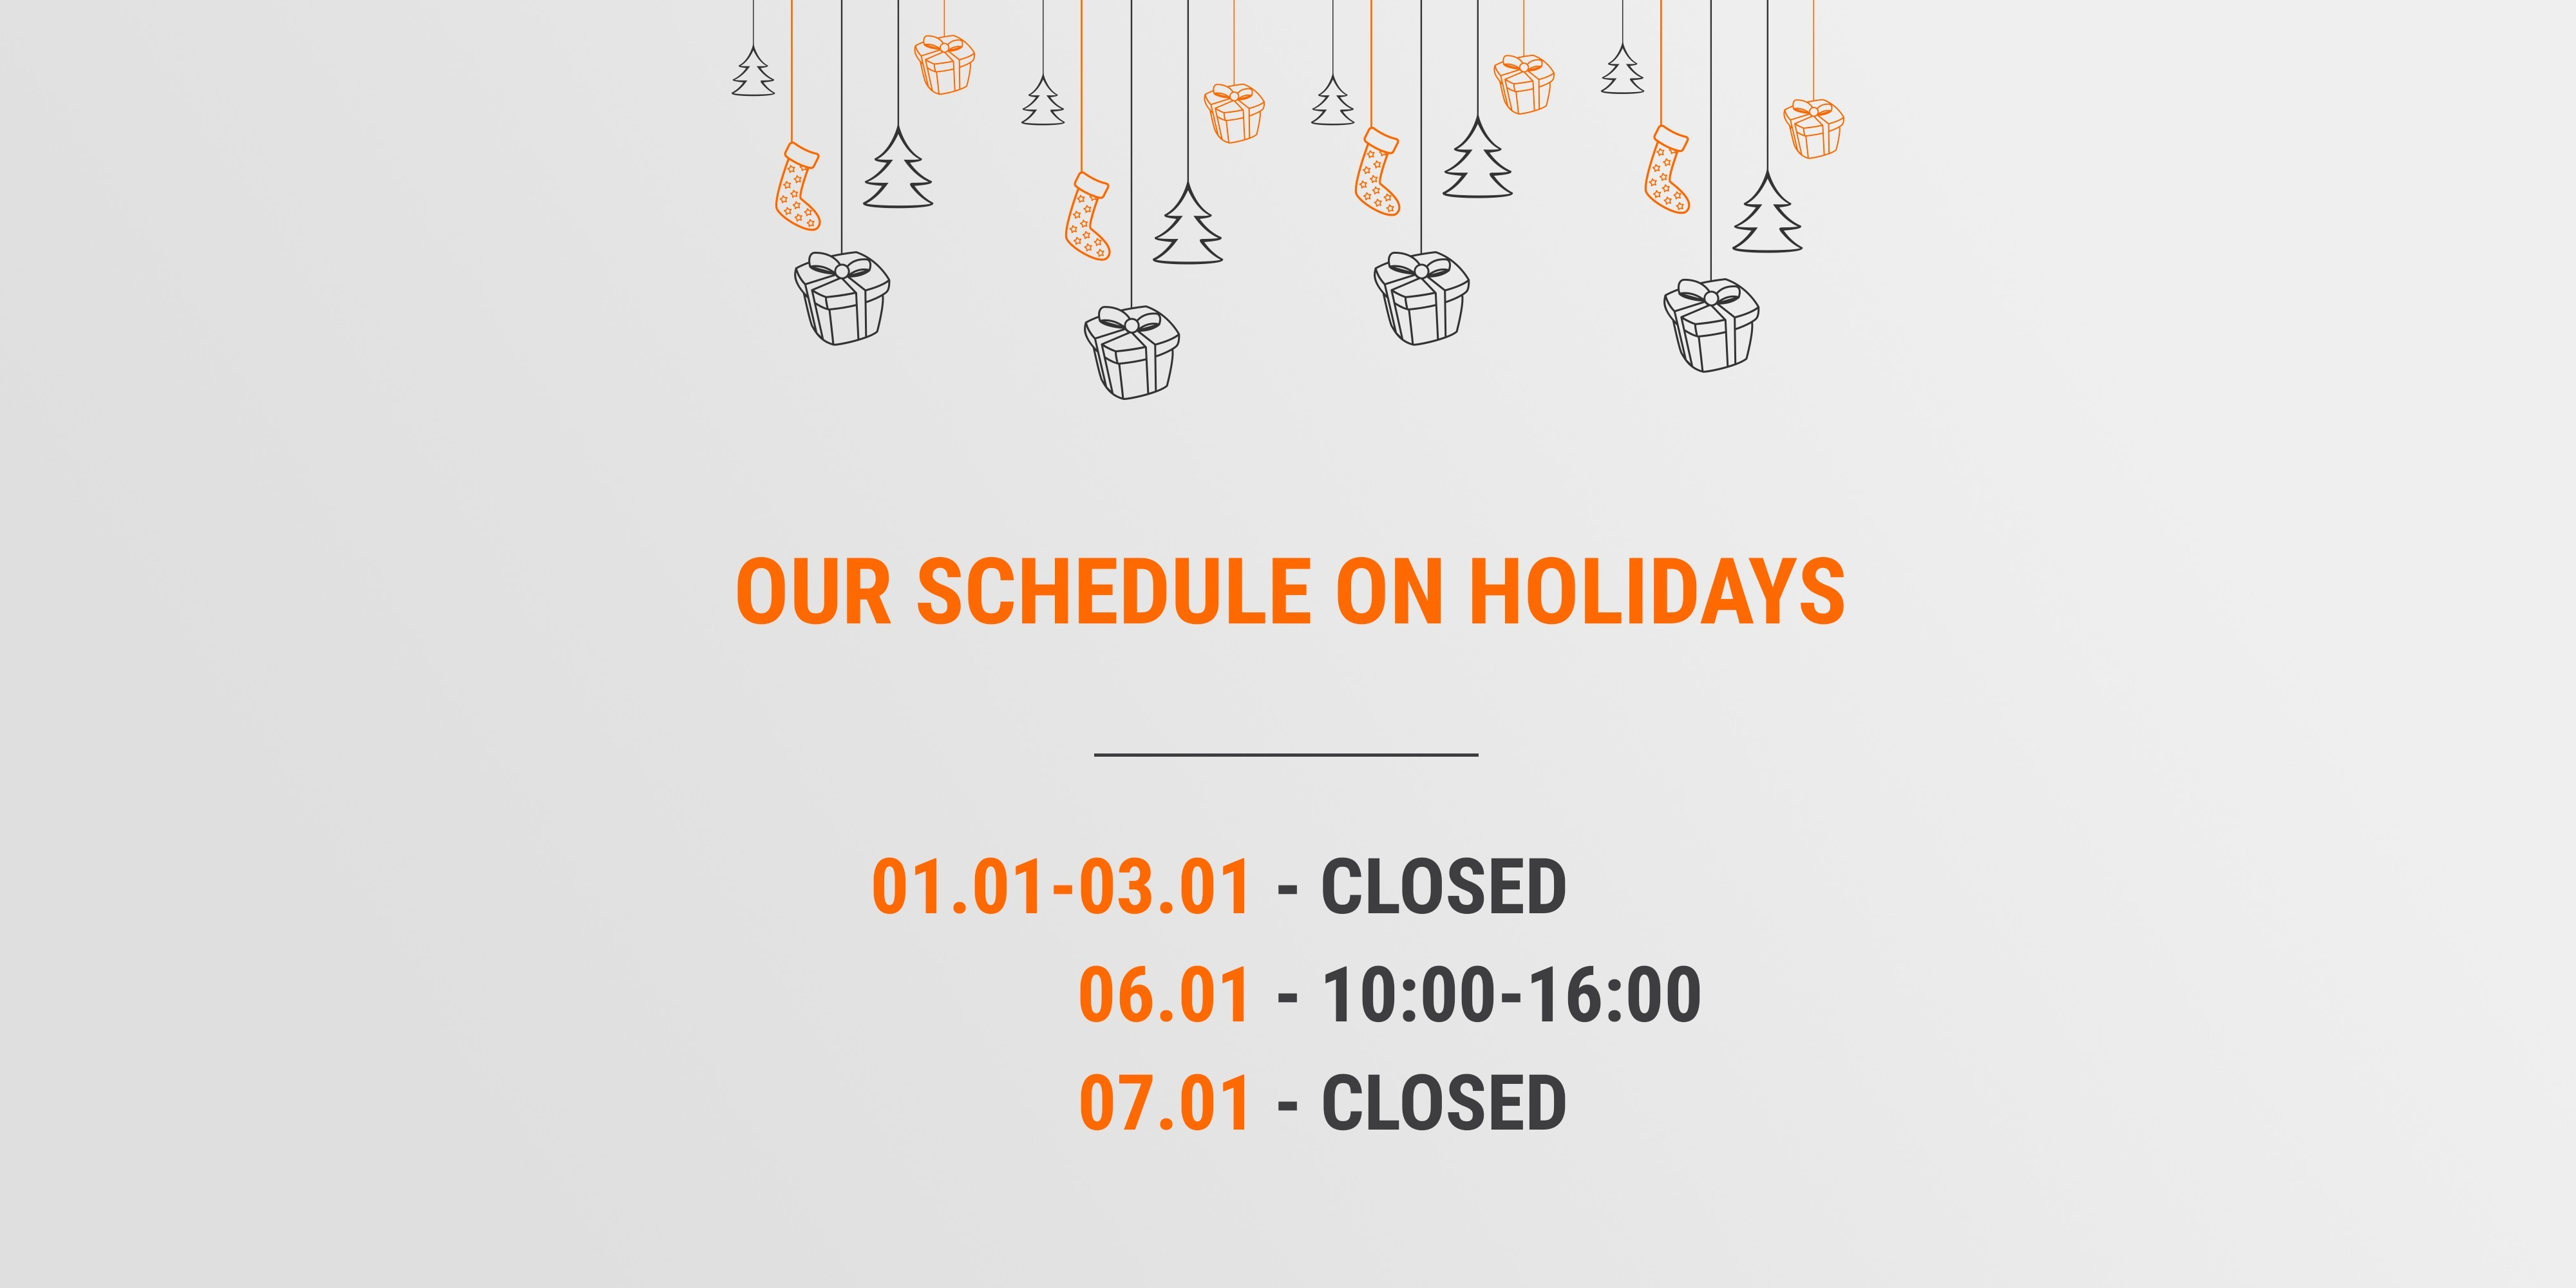 Work schedule on New Year holidays